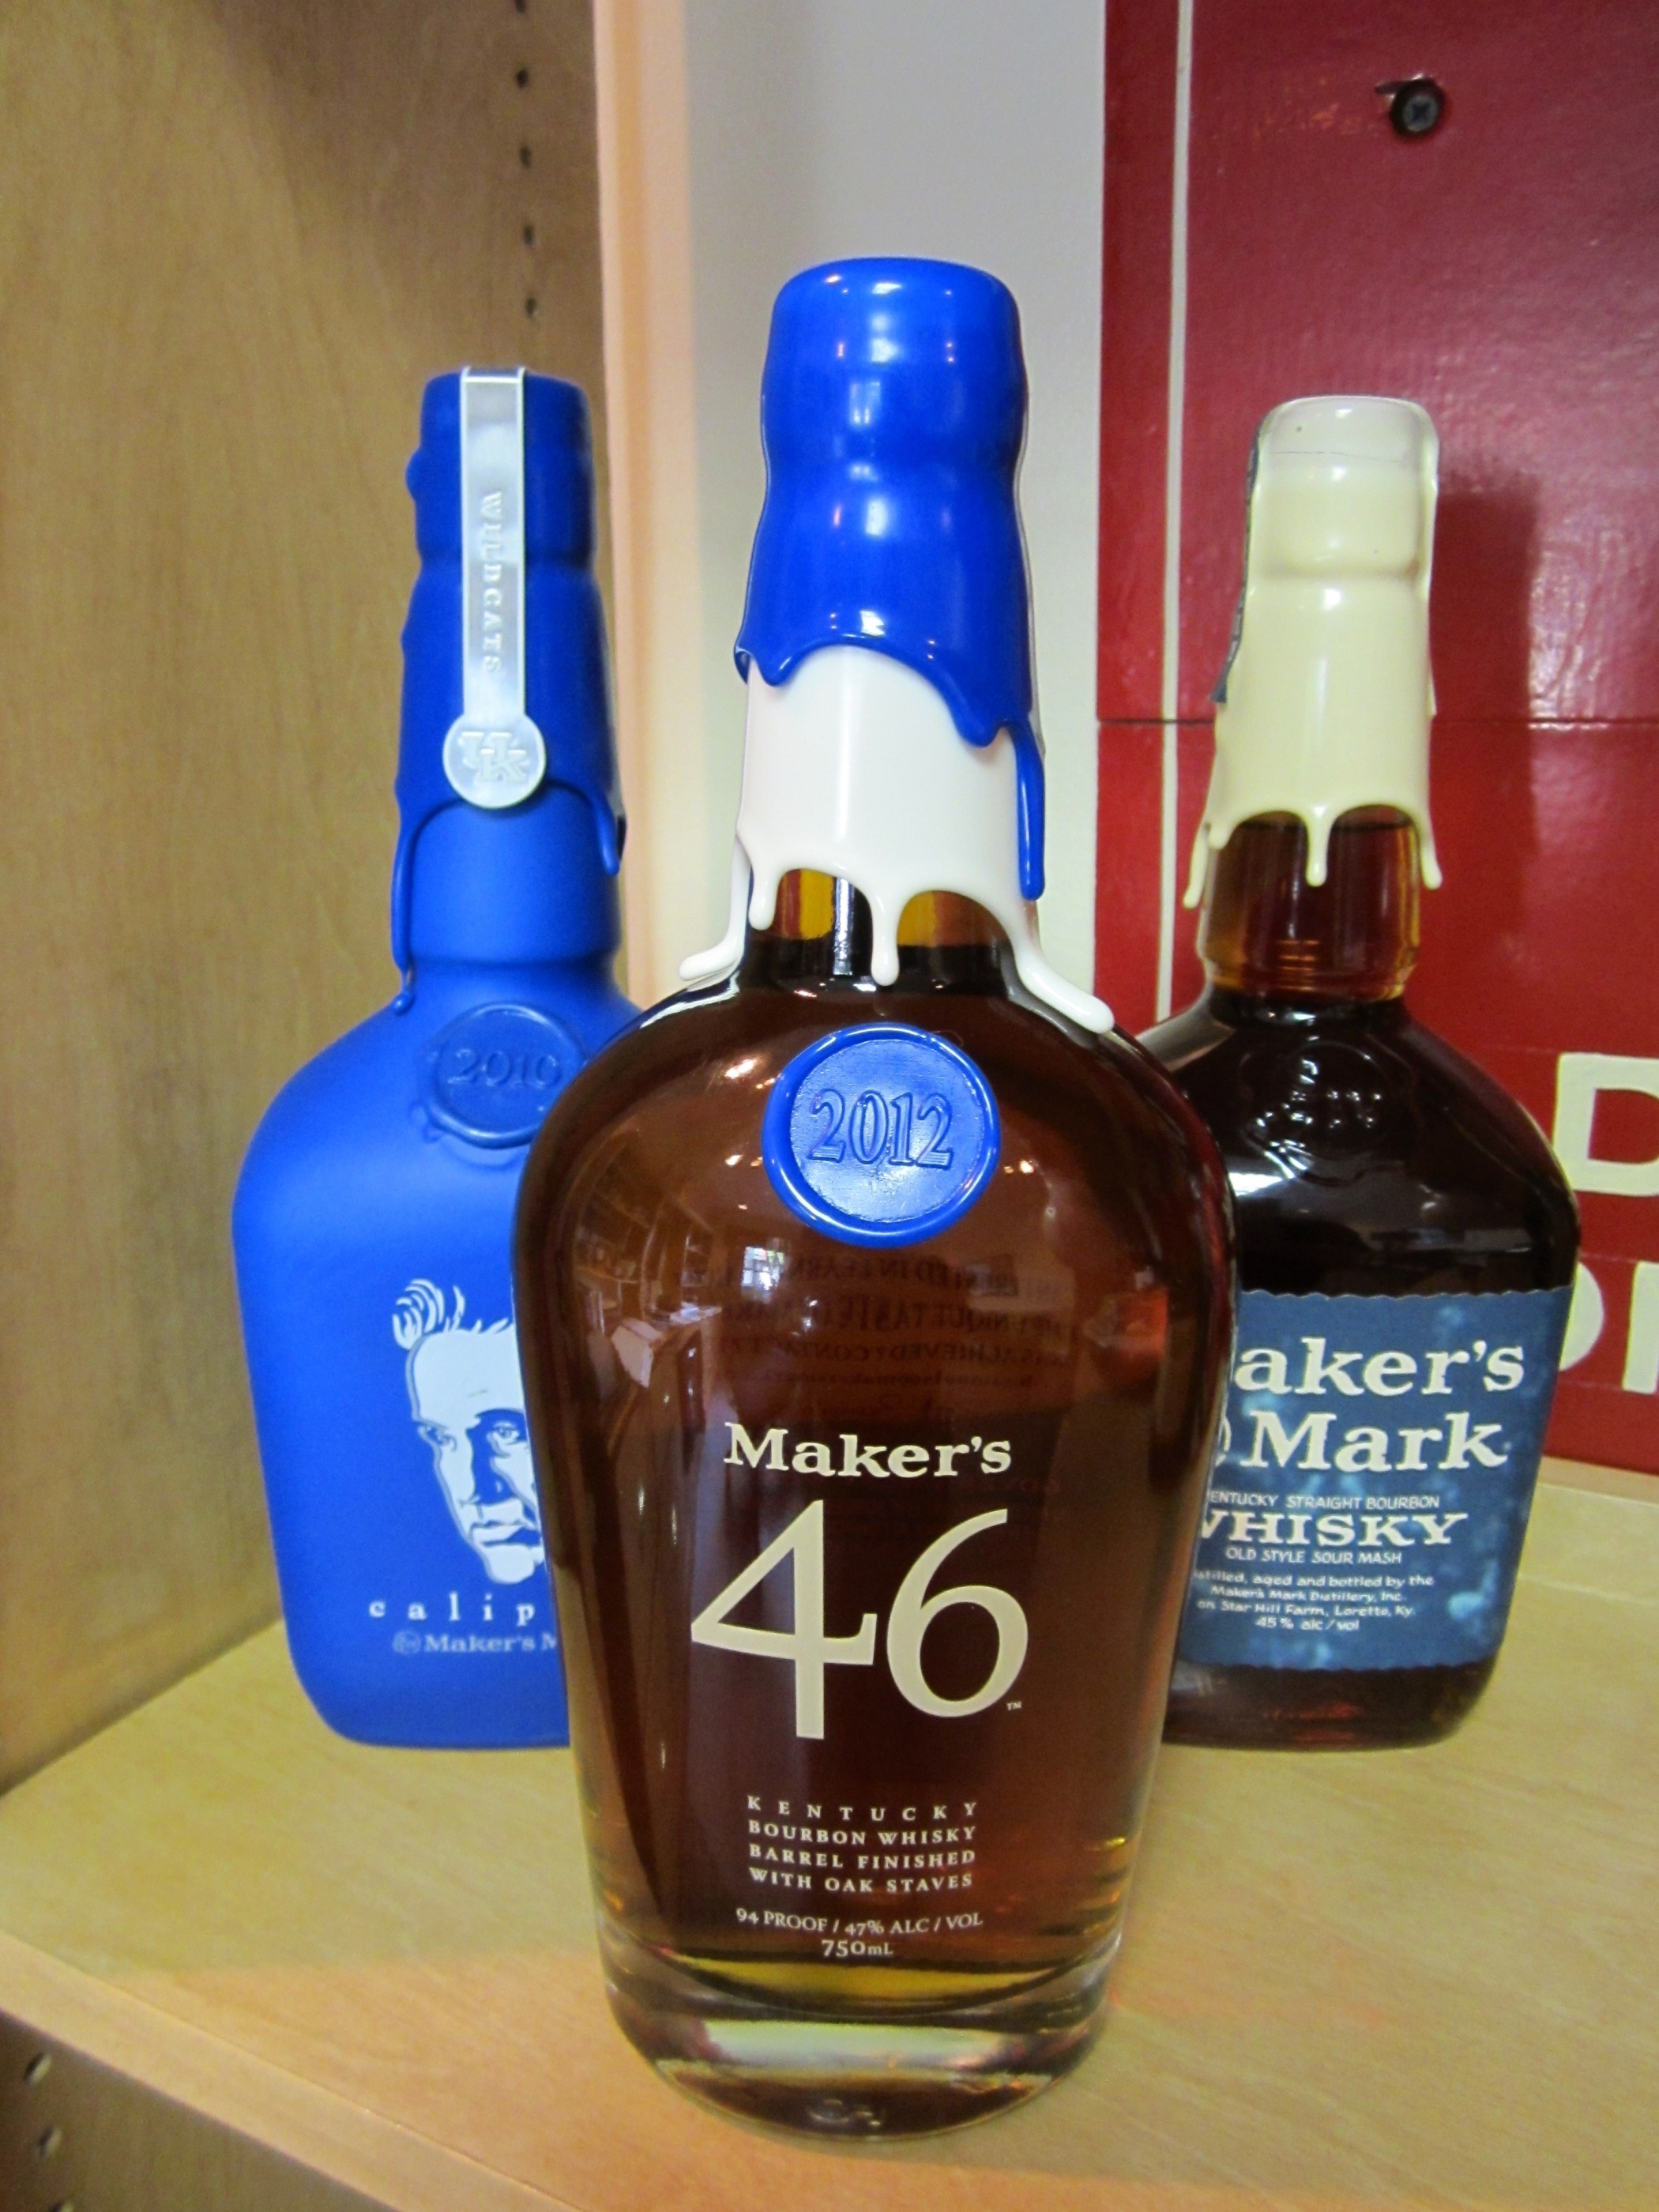 Maker's 46 UK Championship Bottle